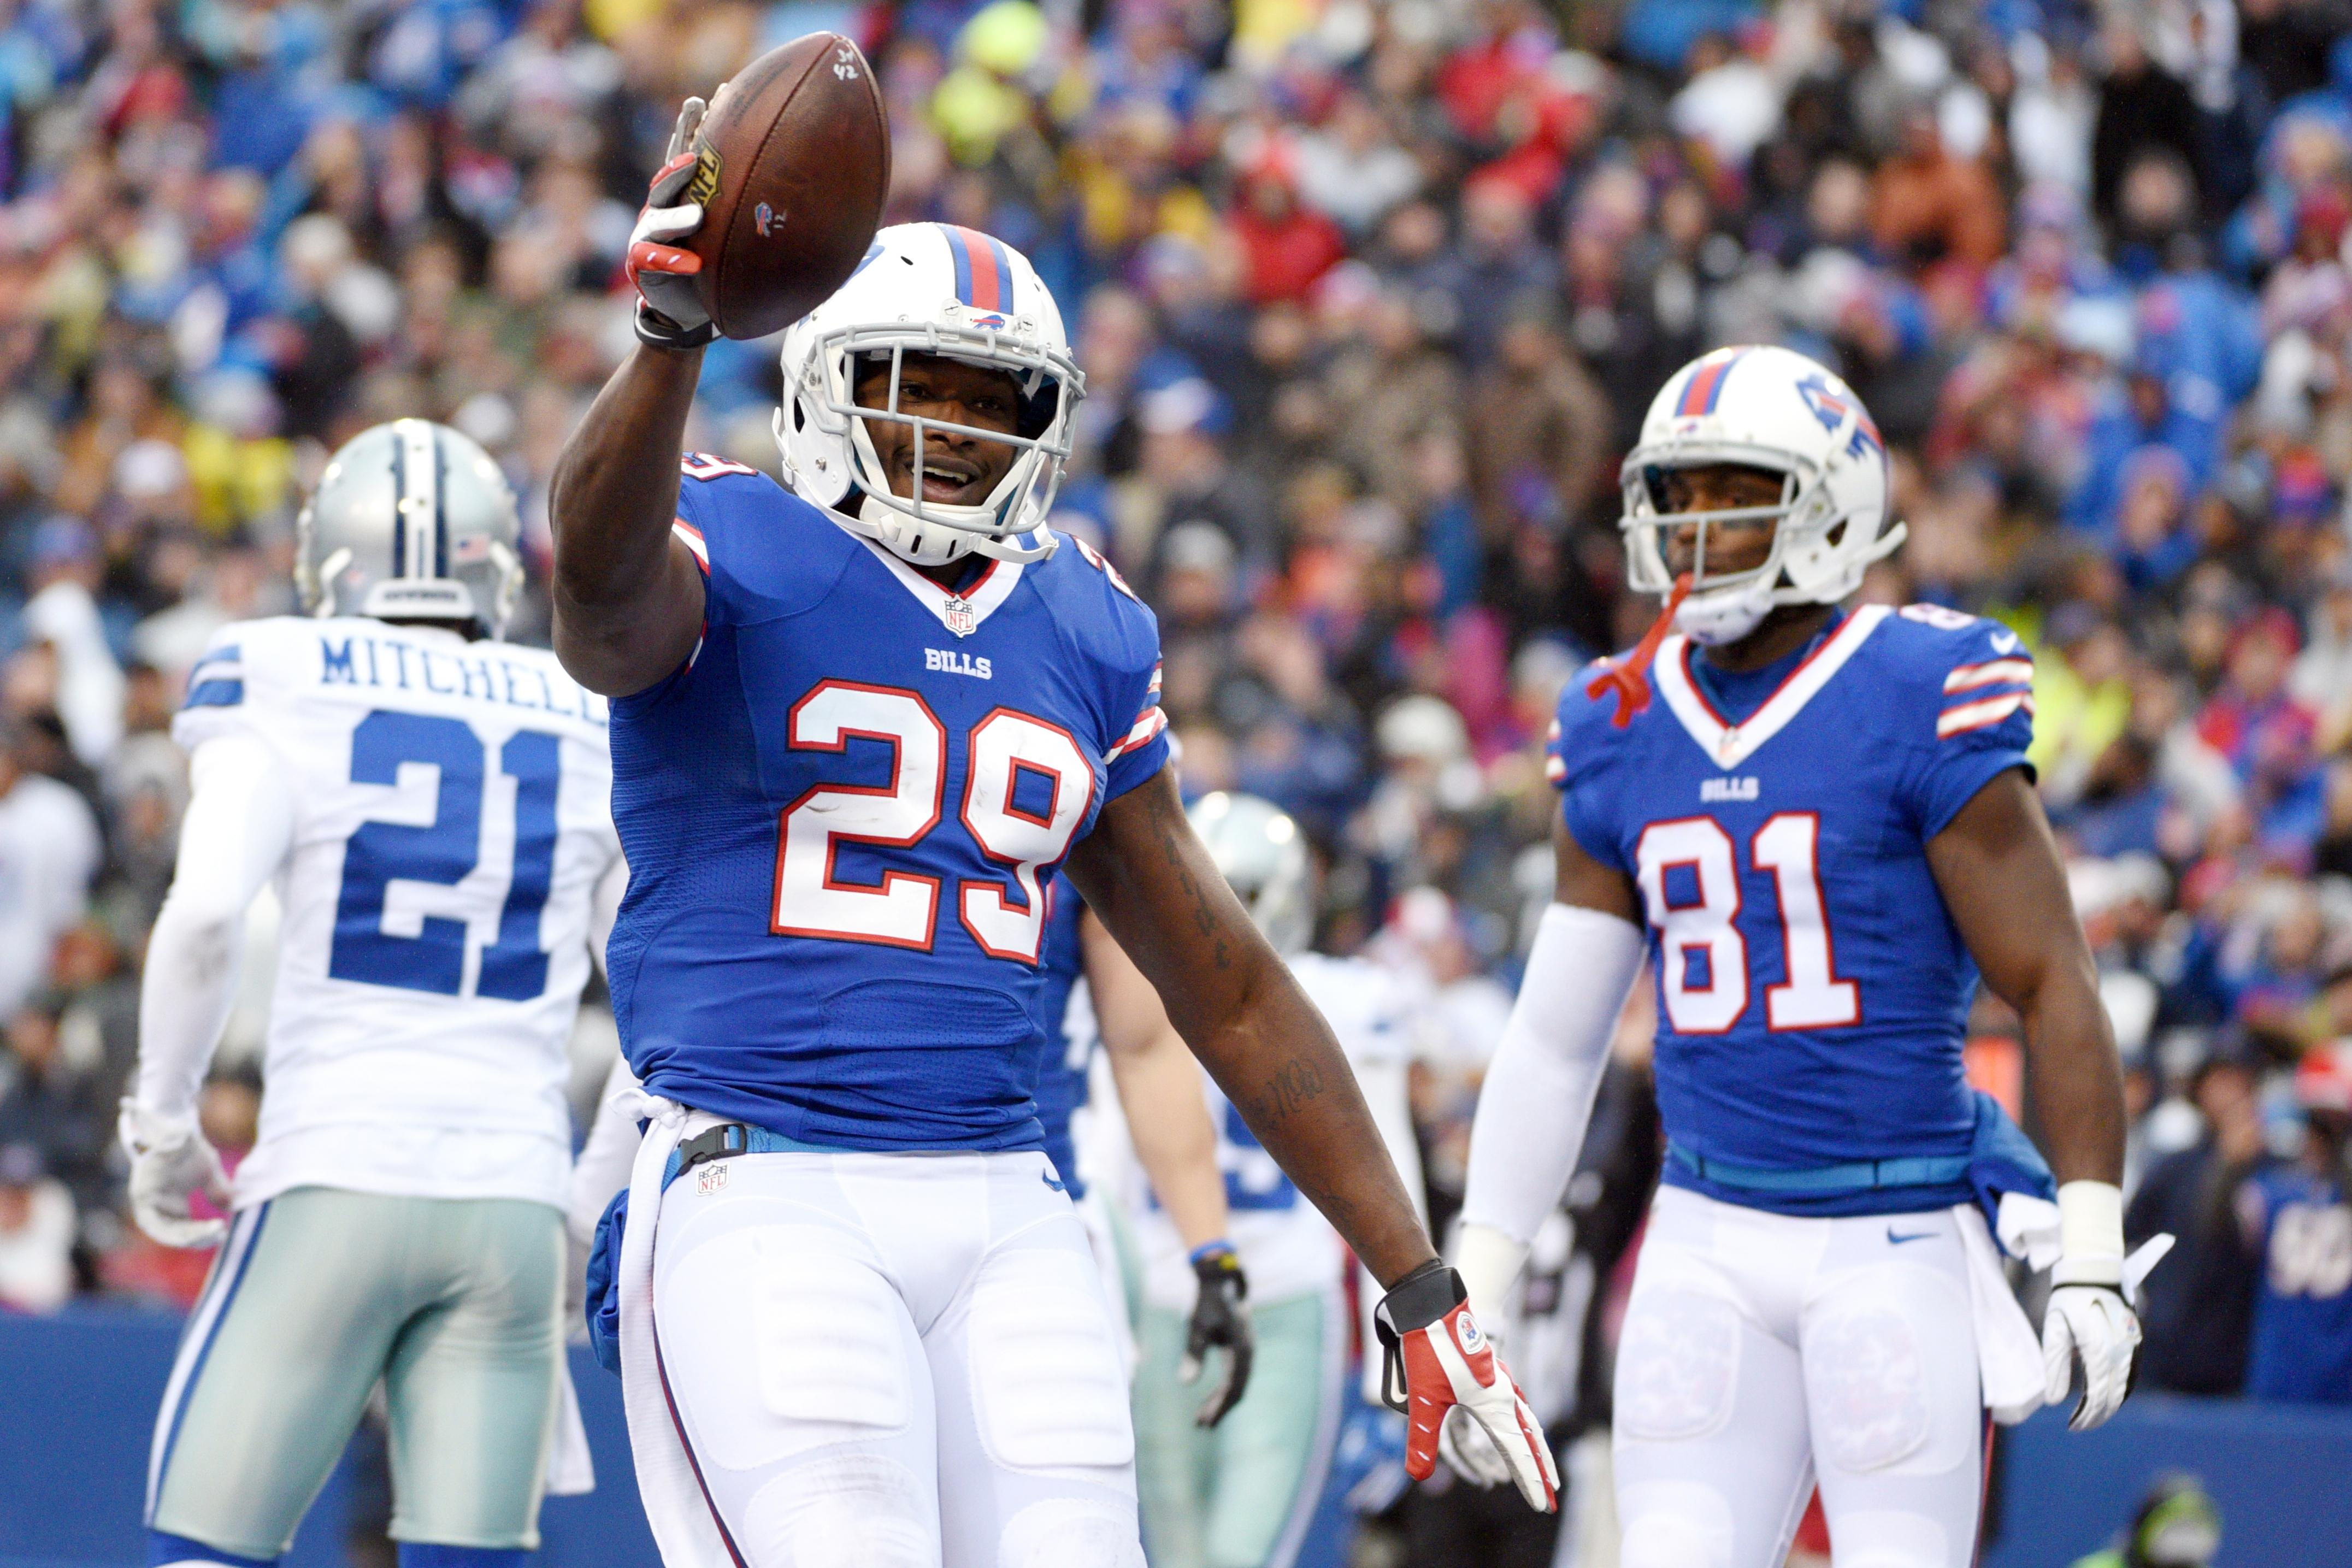 Remember RB Karlos Williams? He was reinstated after nearly two-year suspension